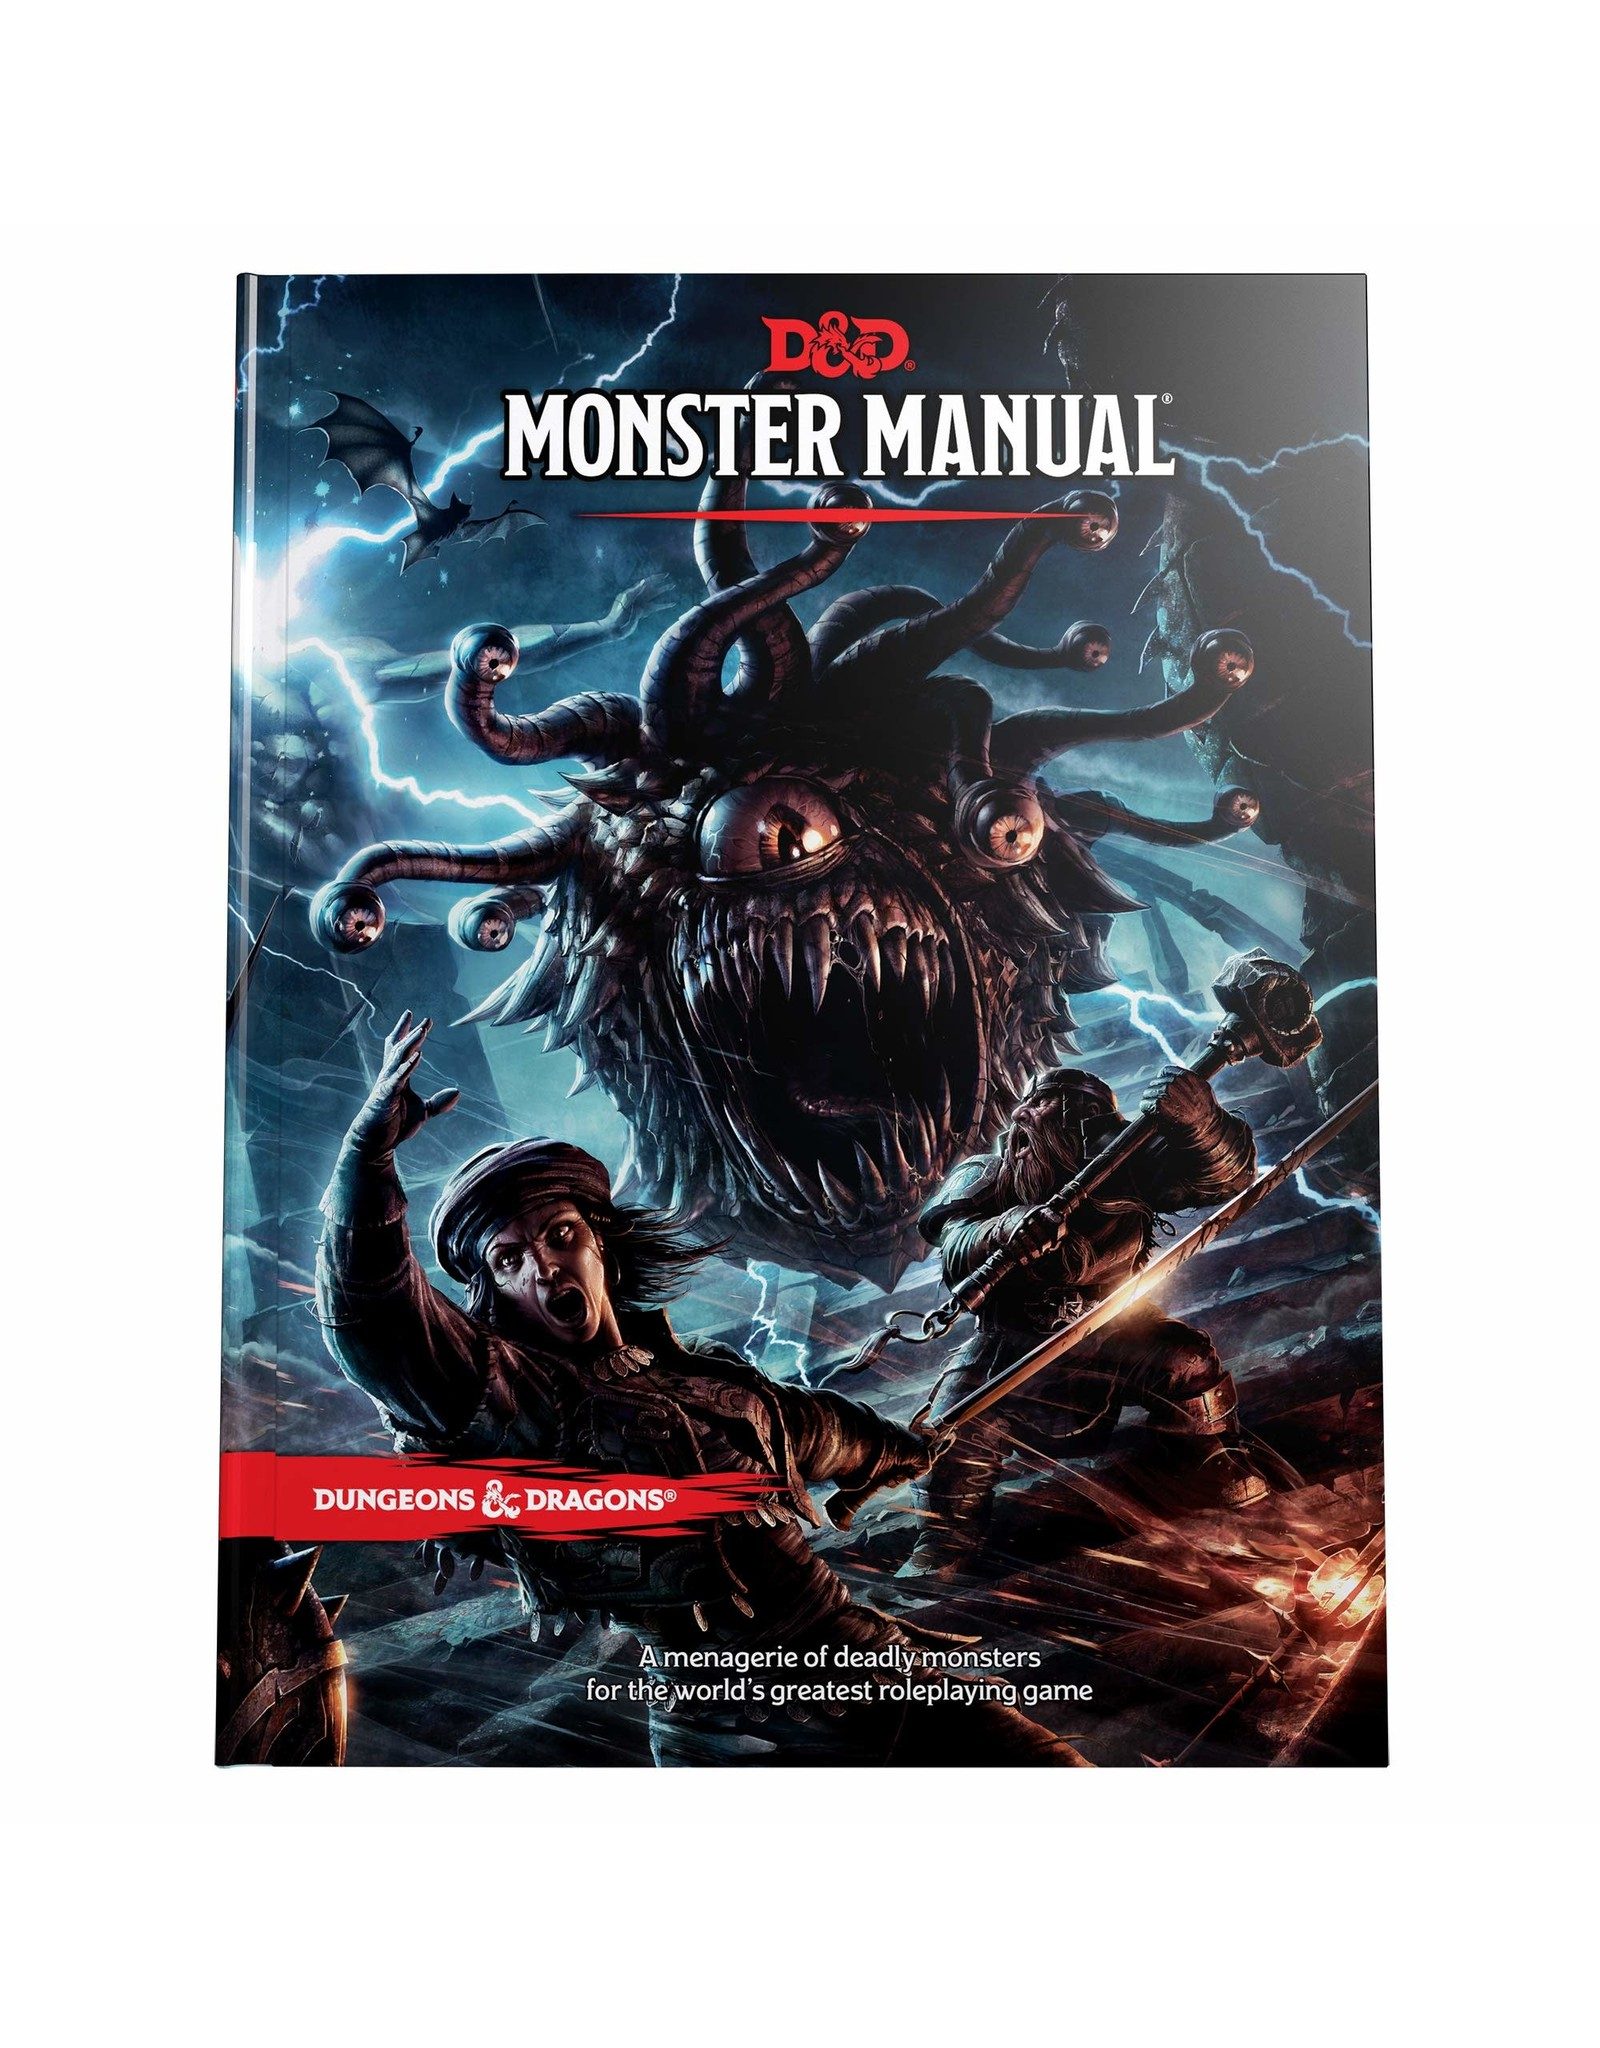 Wizards of the Coast DnD 5th Edition Monster Manual